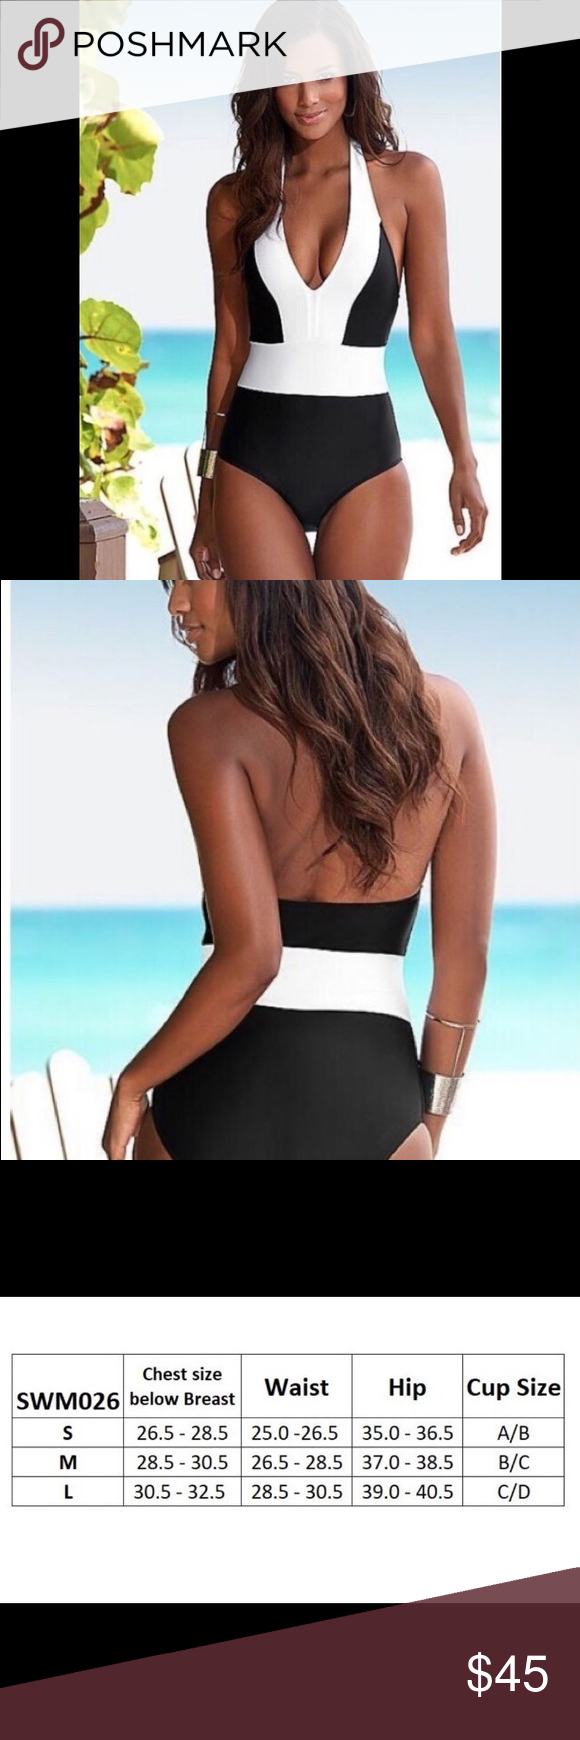 d870c937db746 🎉HP🎉SEXY BLACK/ WHITE ONE PIECE BATHING SUIT 🎉HOST PICK 🎉BEST IN ...